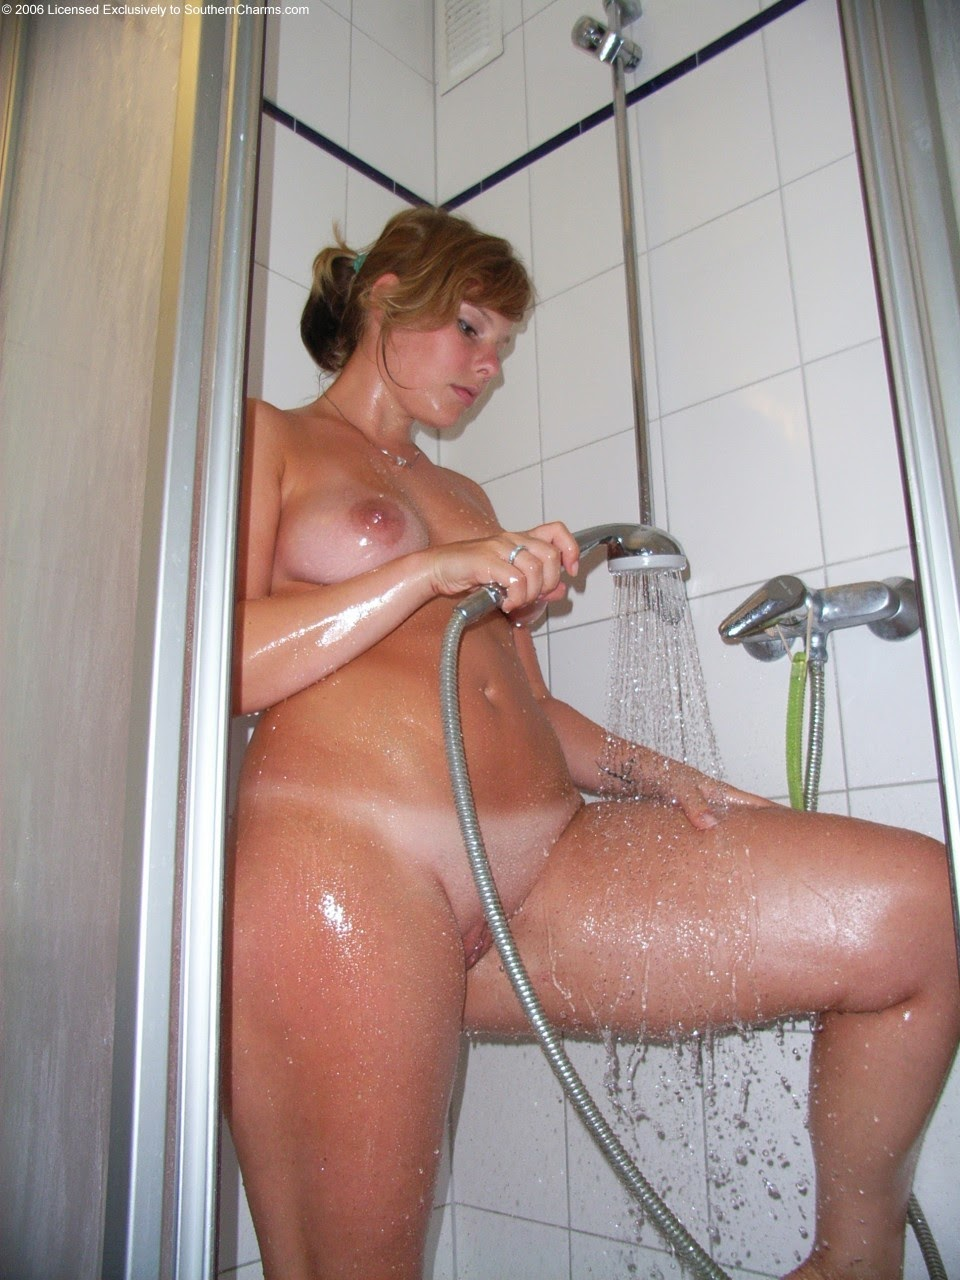 shower gallery pawg pics charms southern Cherie